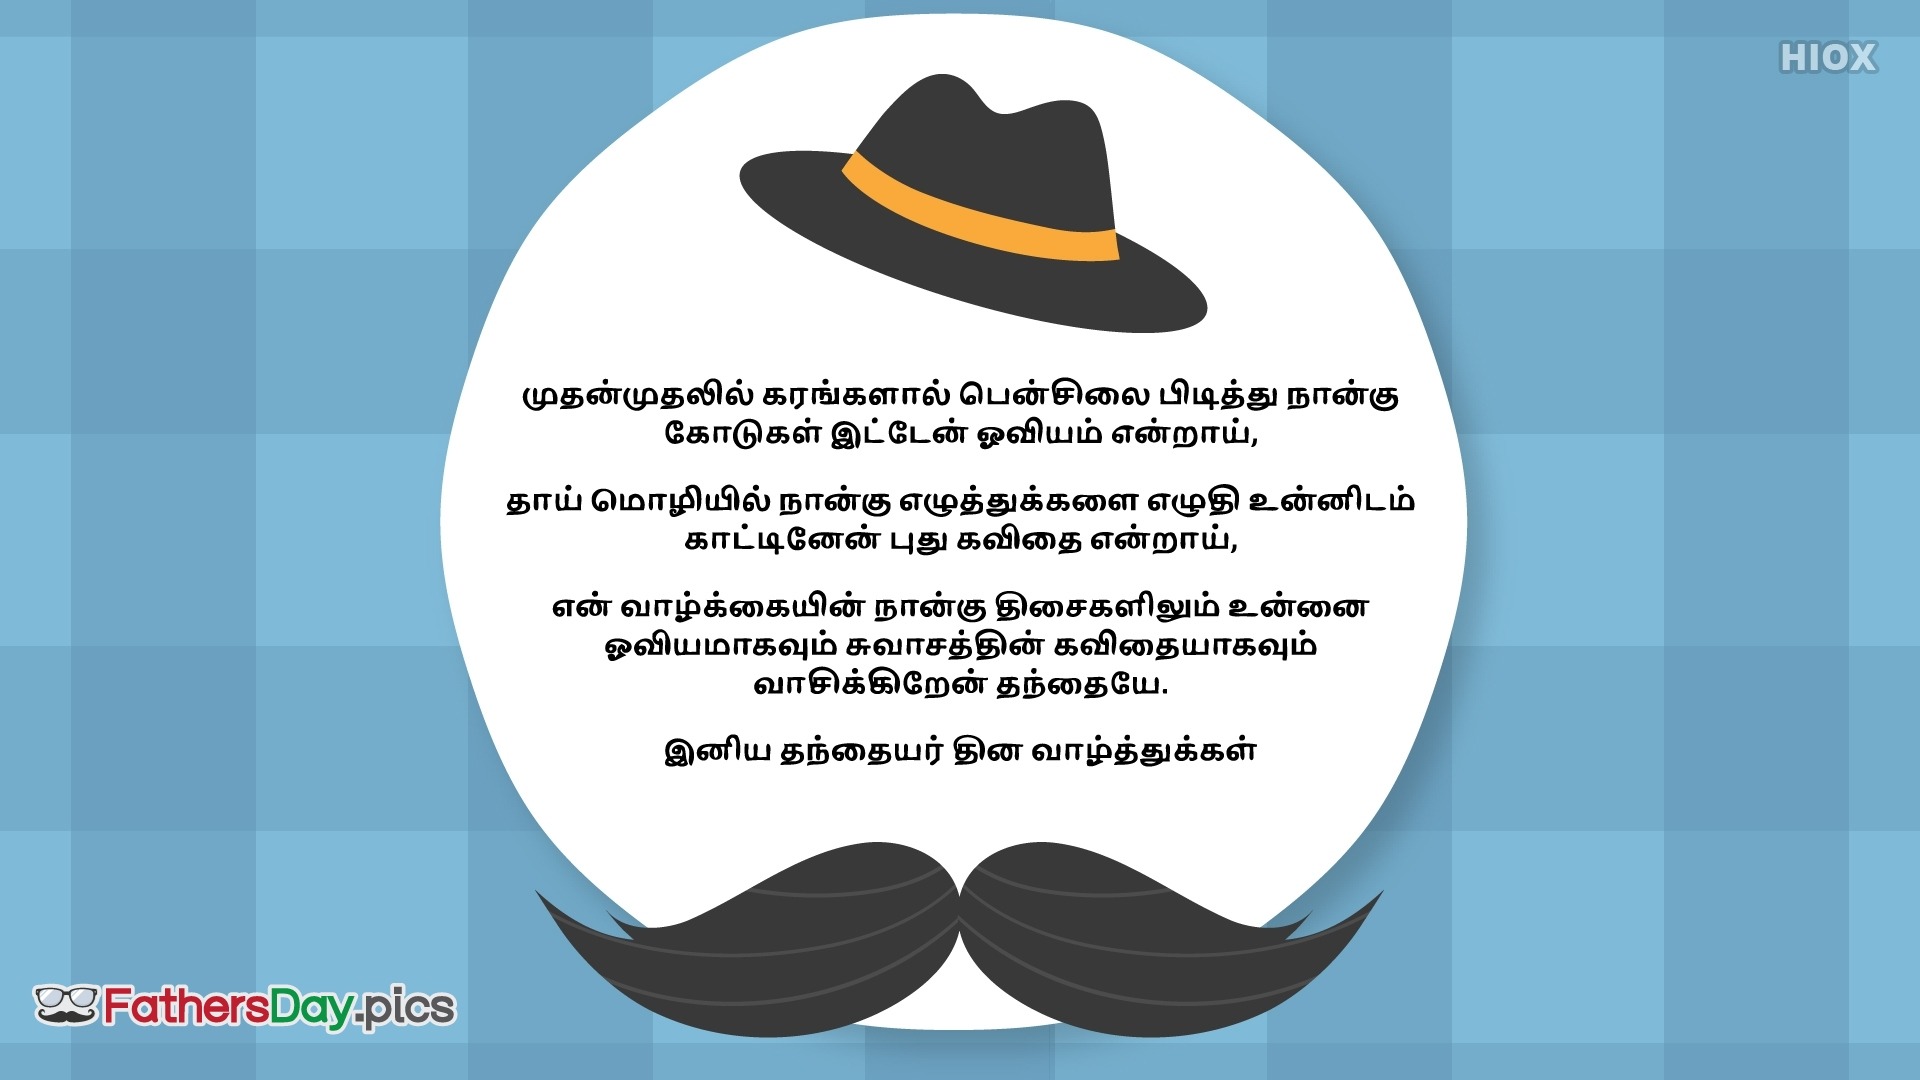 Happy Fathers Day Tamil Kavithai